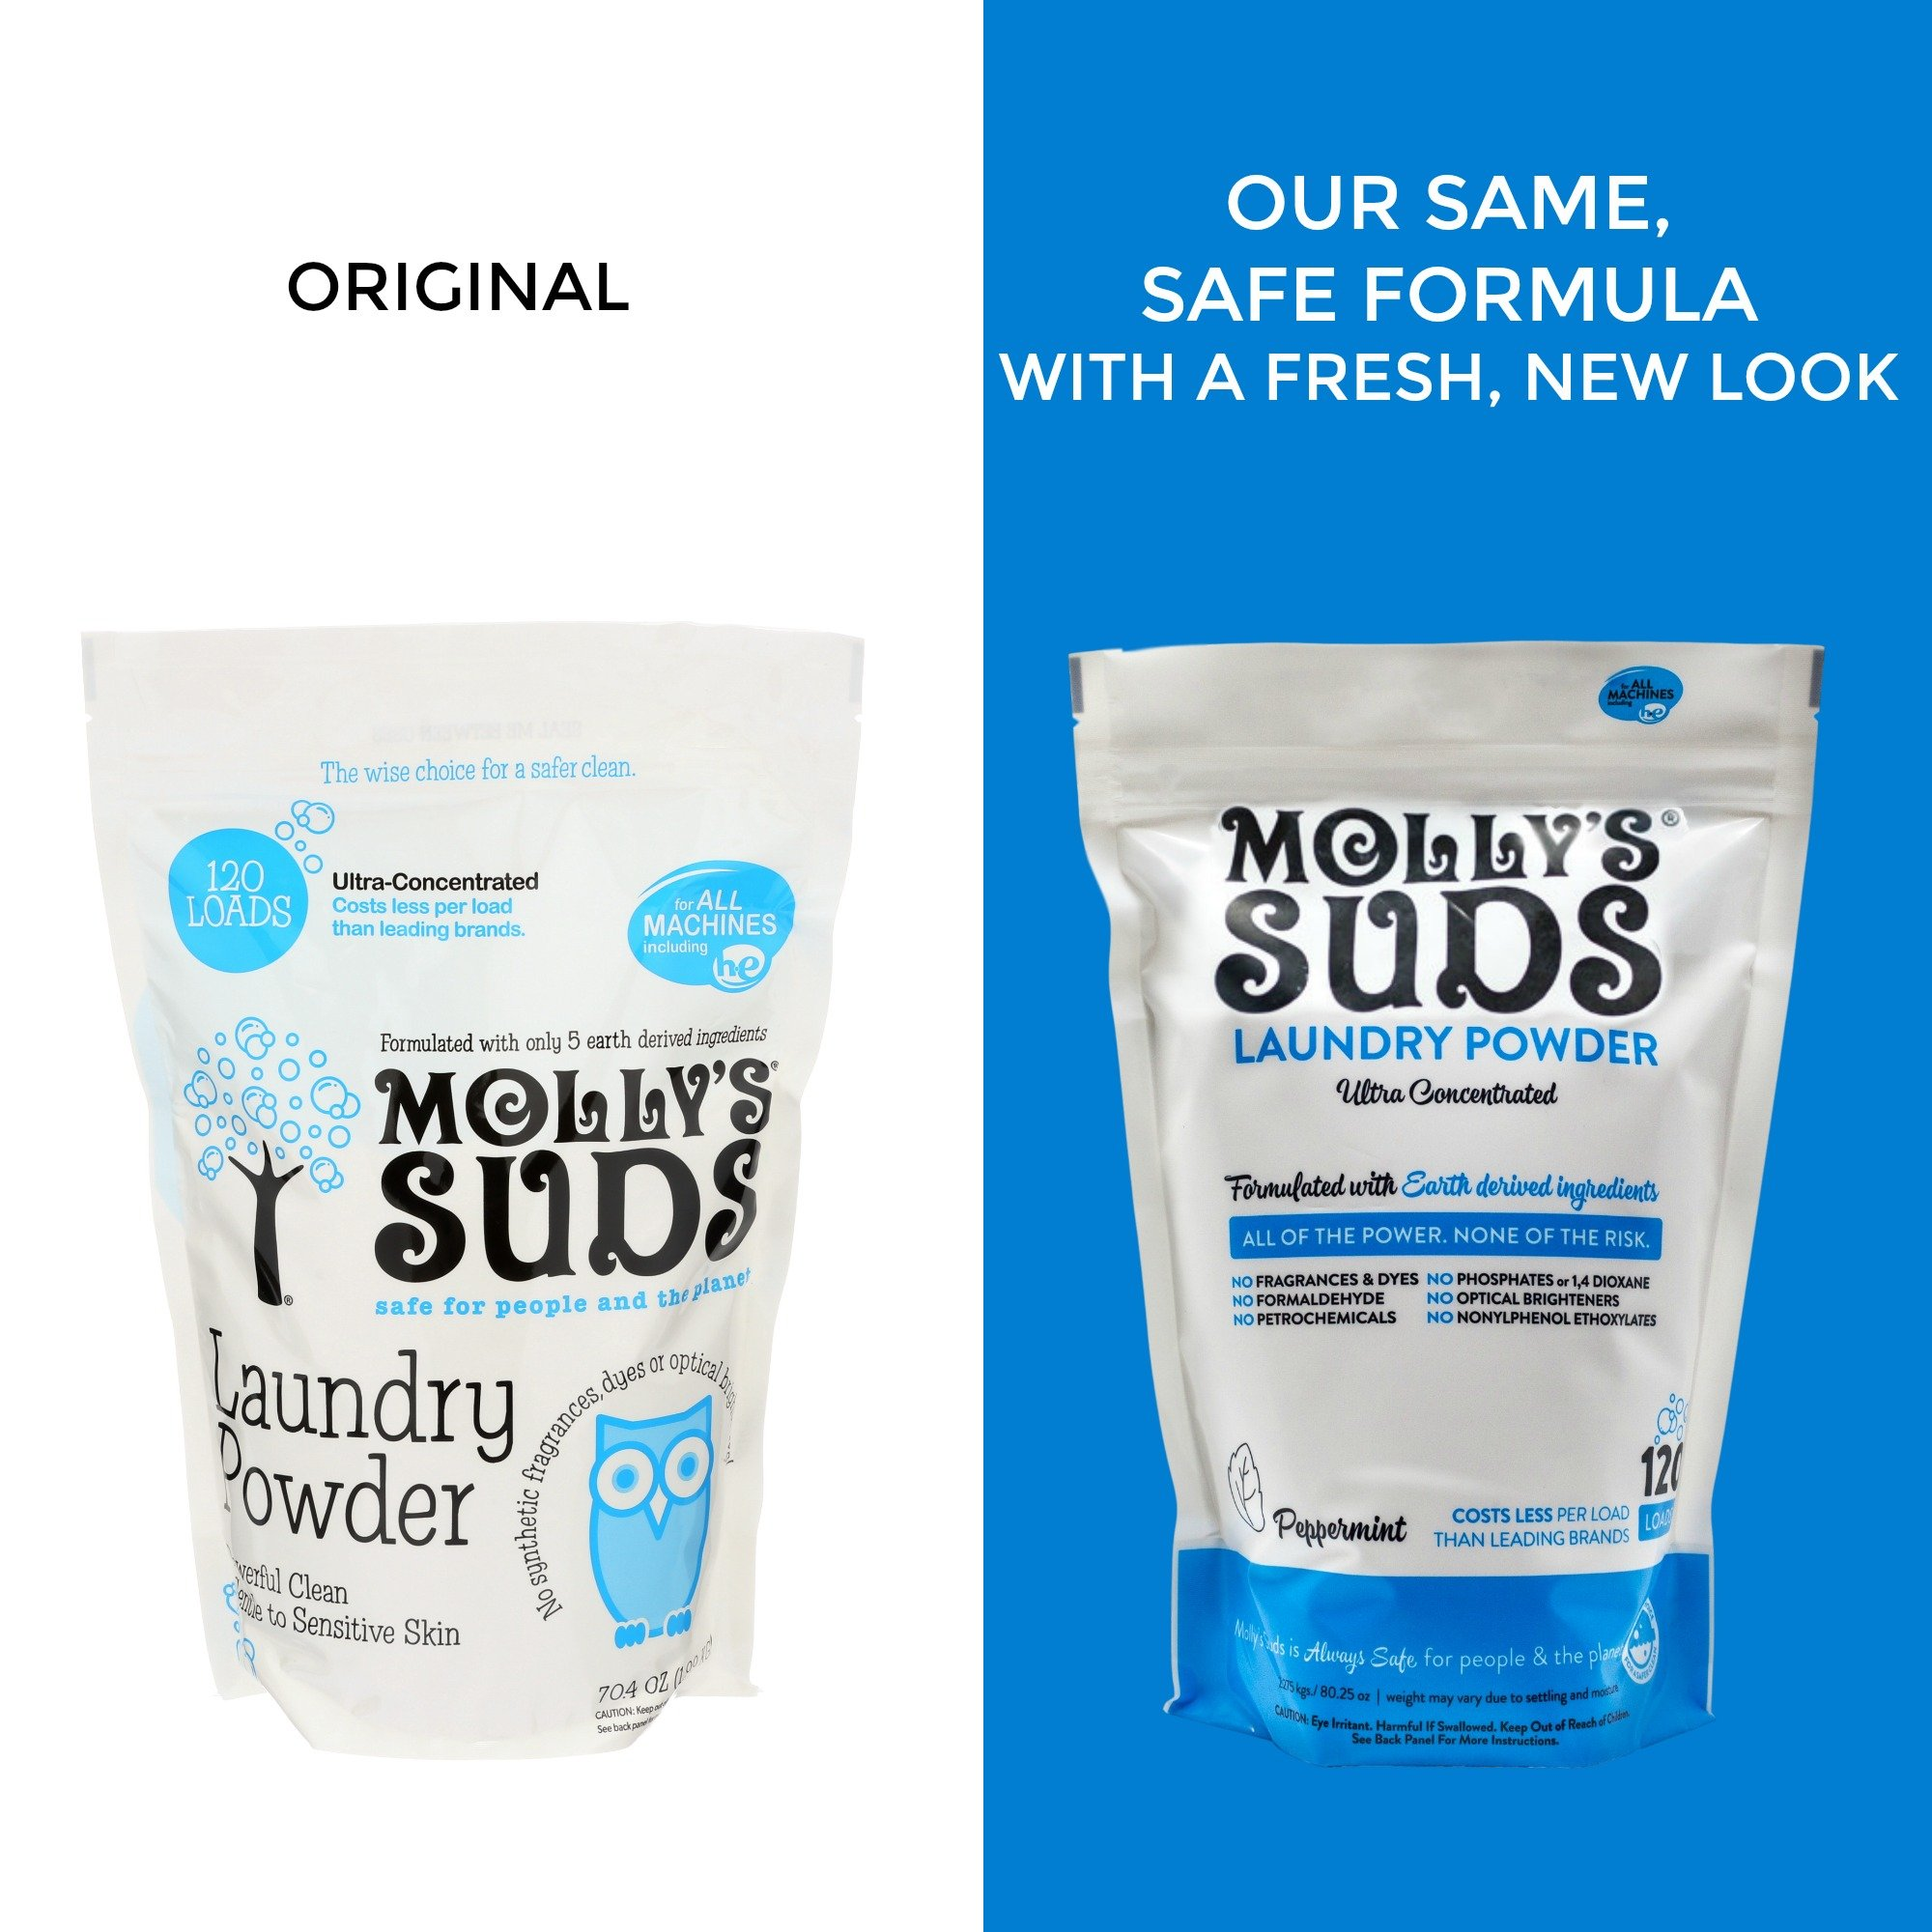 Molly's Suds Original Laundry Detergent Powder 120 load, Natural Laundry Soap for Sensitive Skin by Molly's Suds (Image #5)